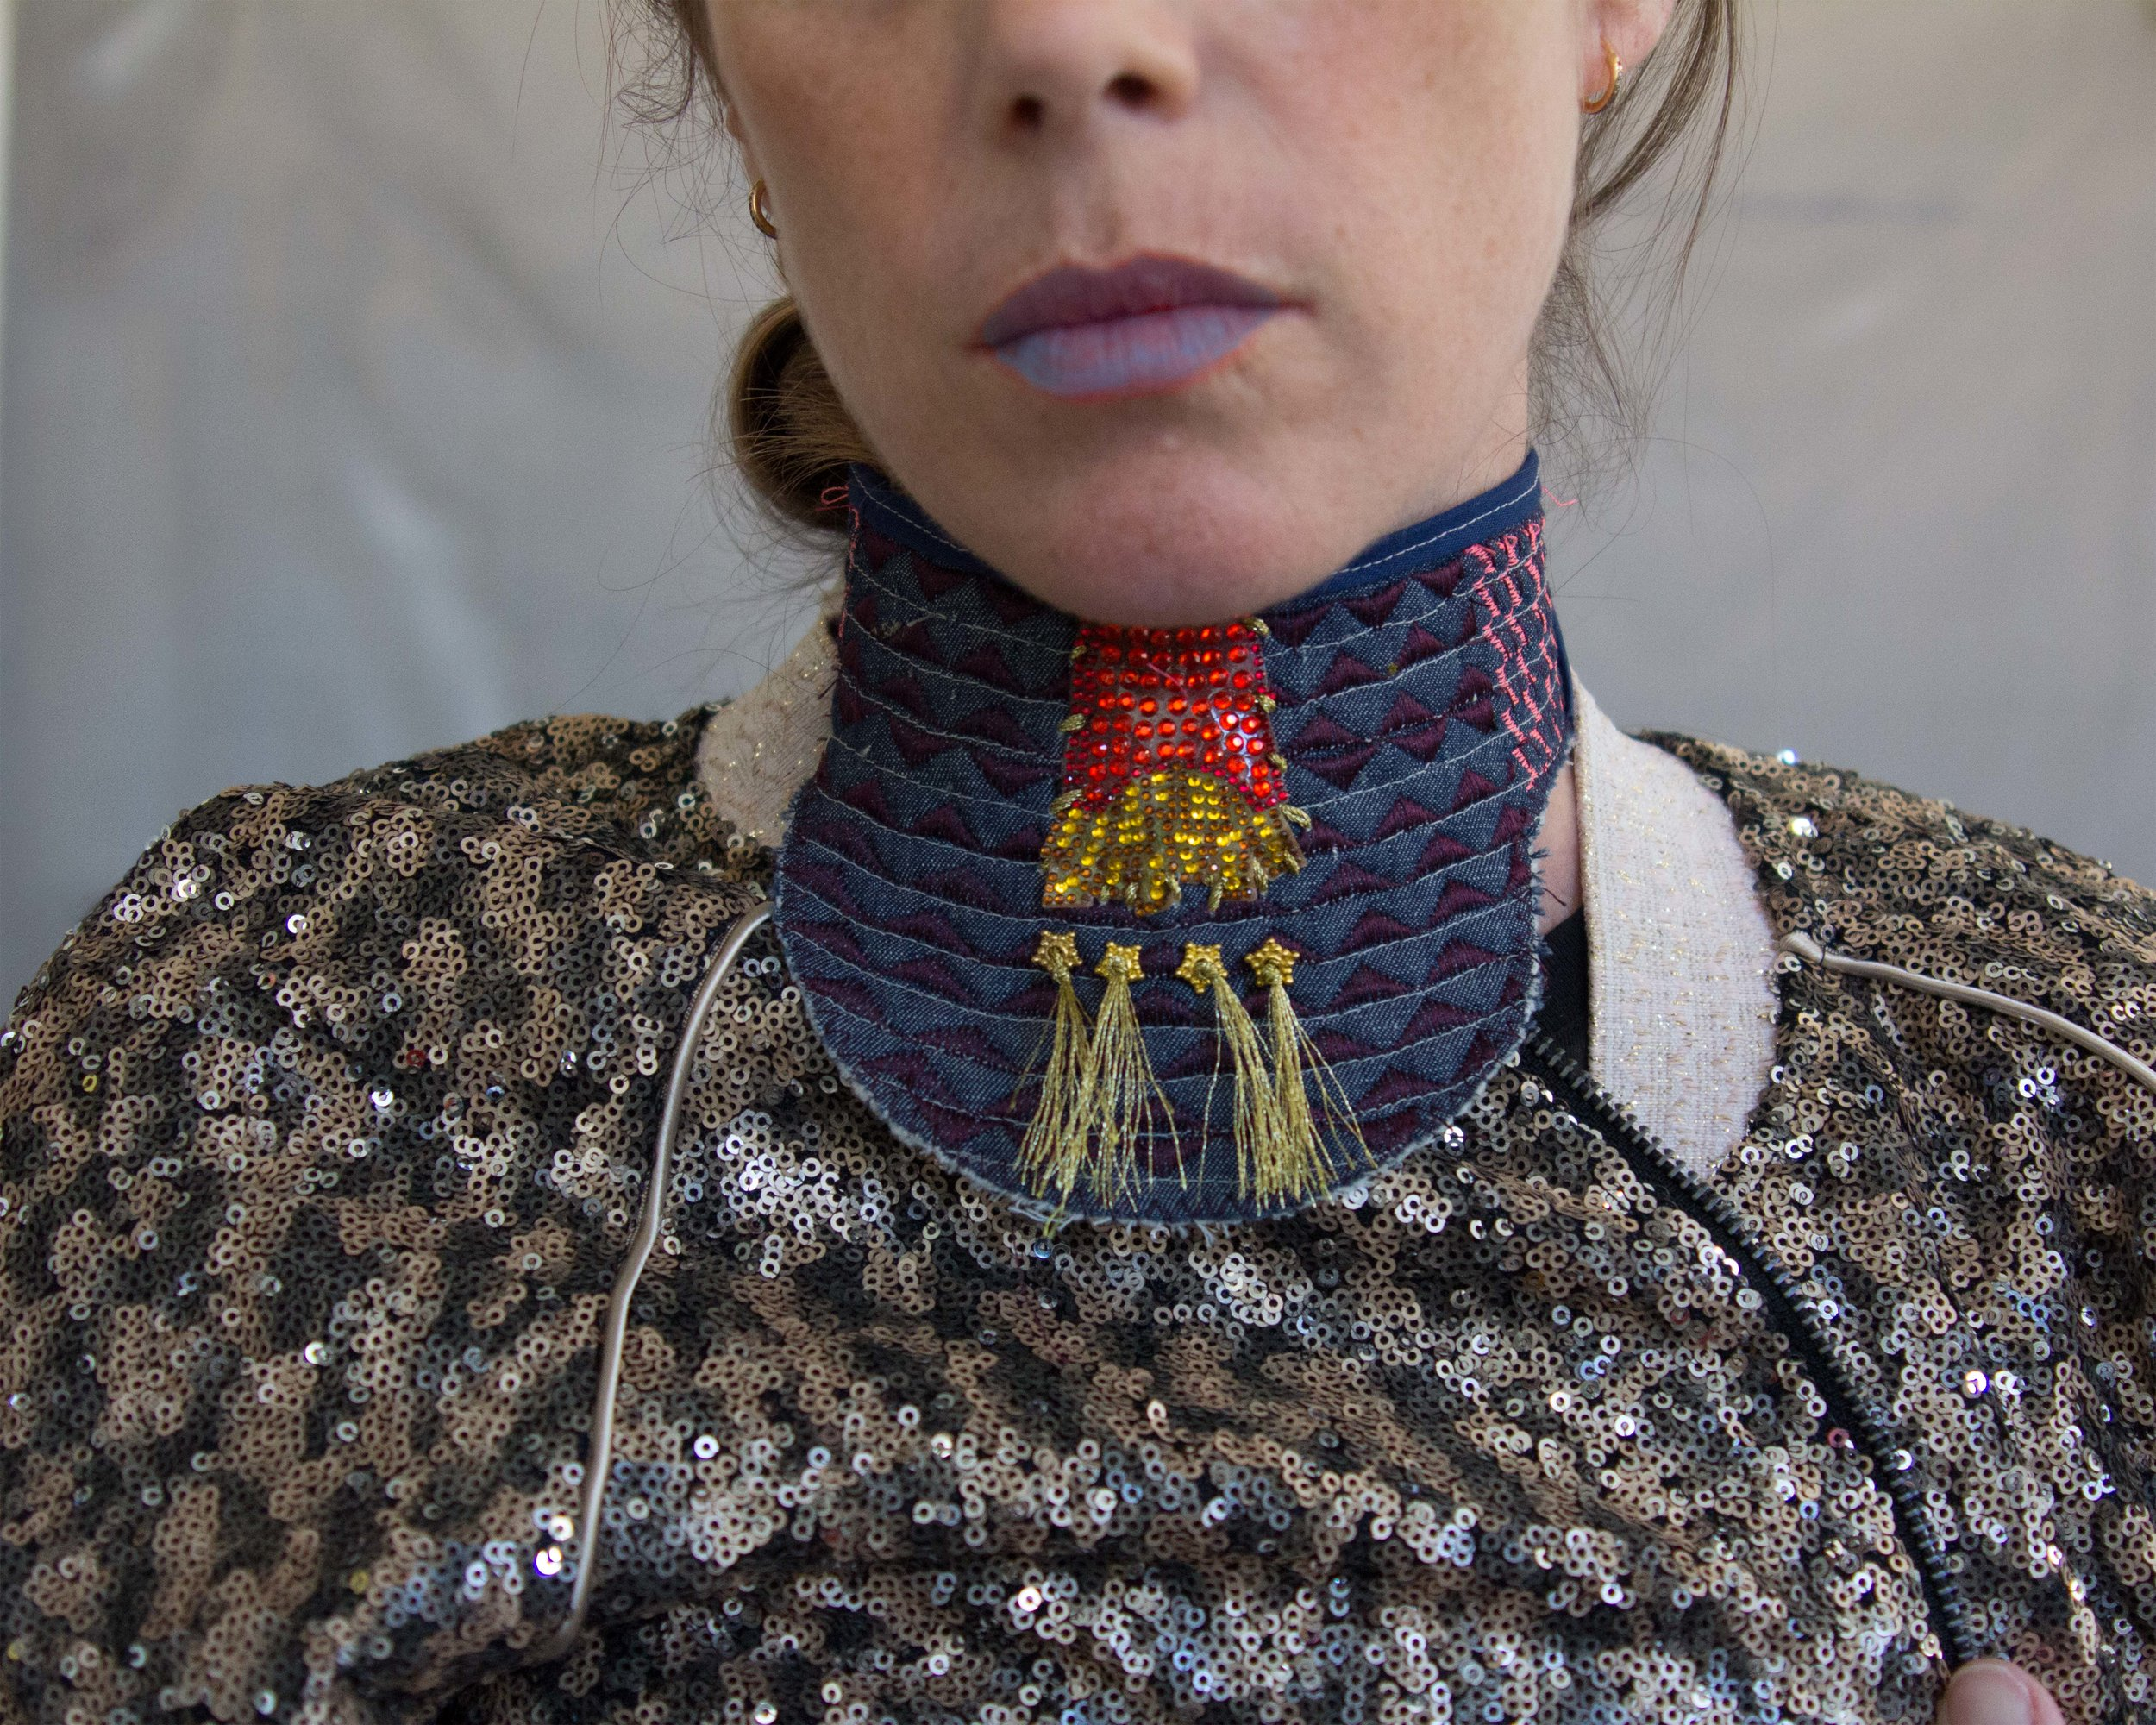 Dissent Collar #9 (blue lips)